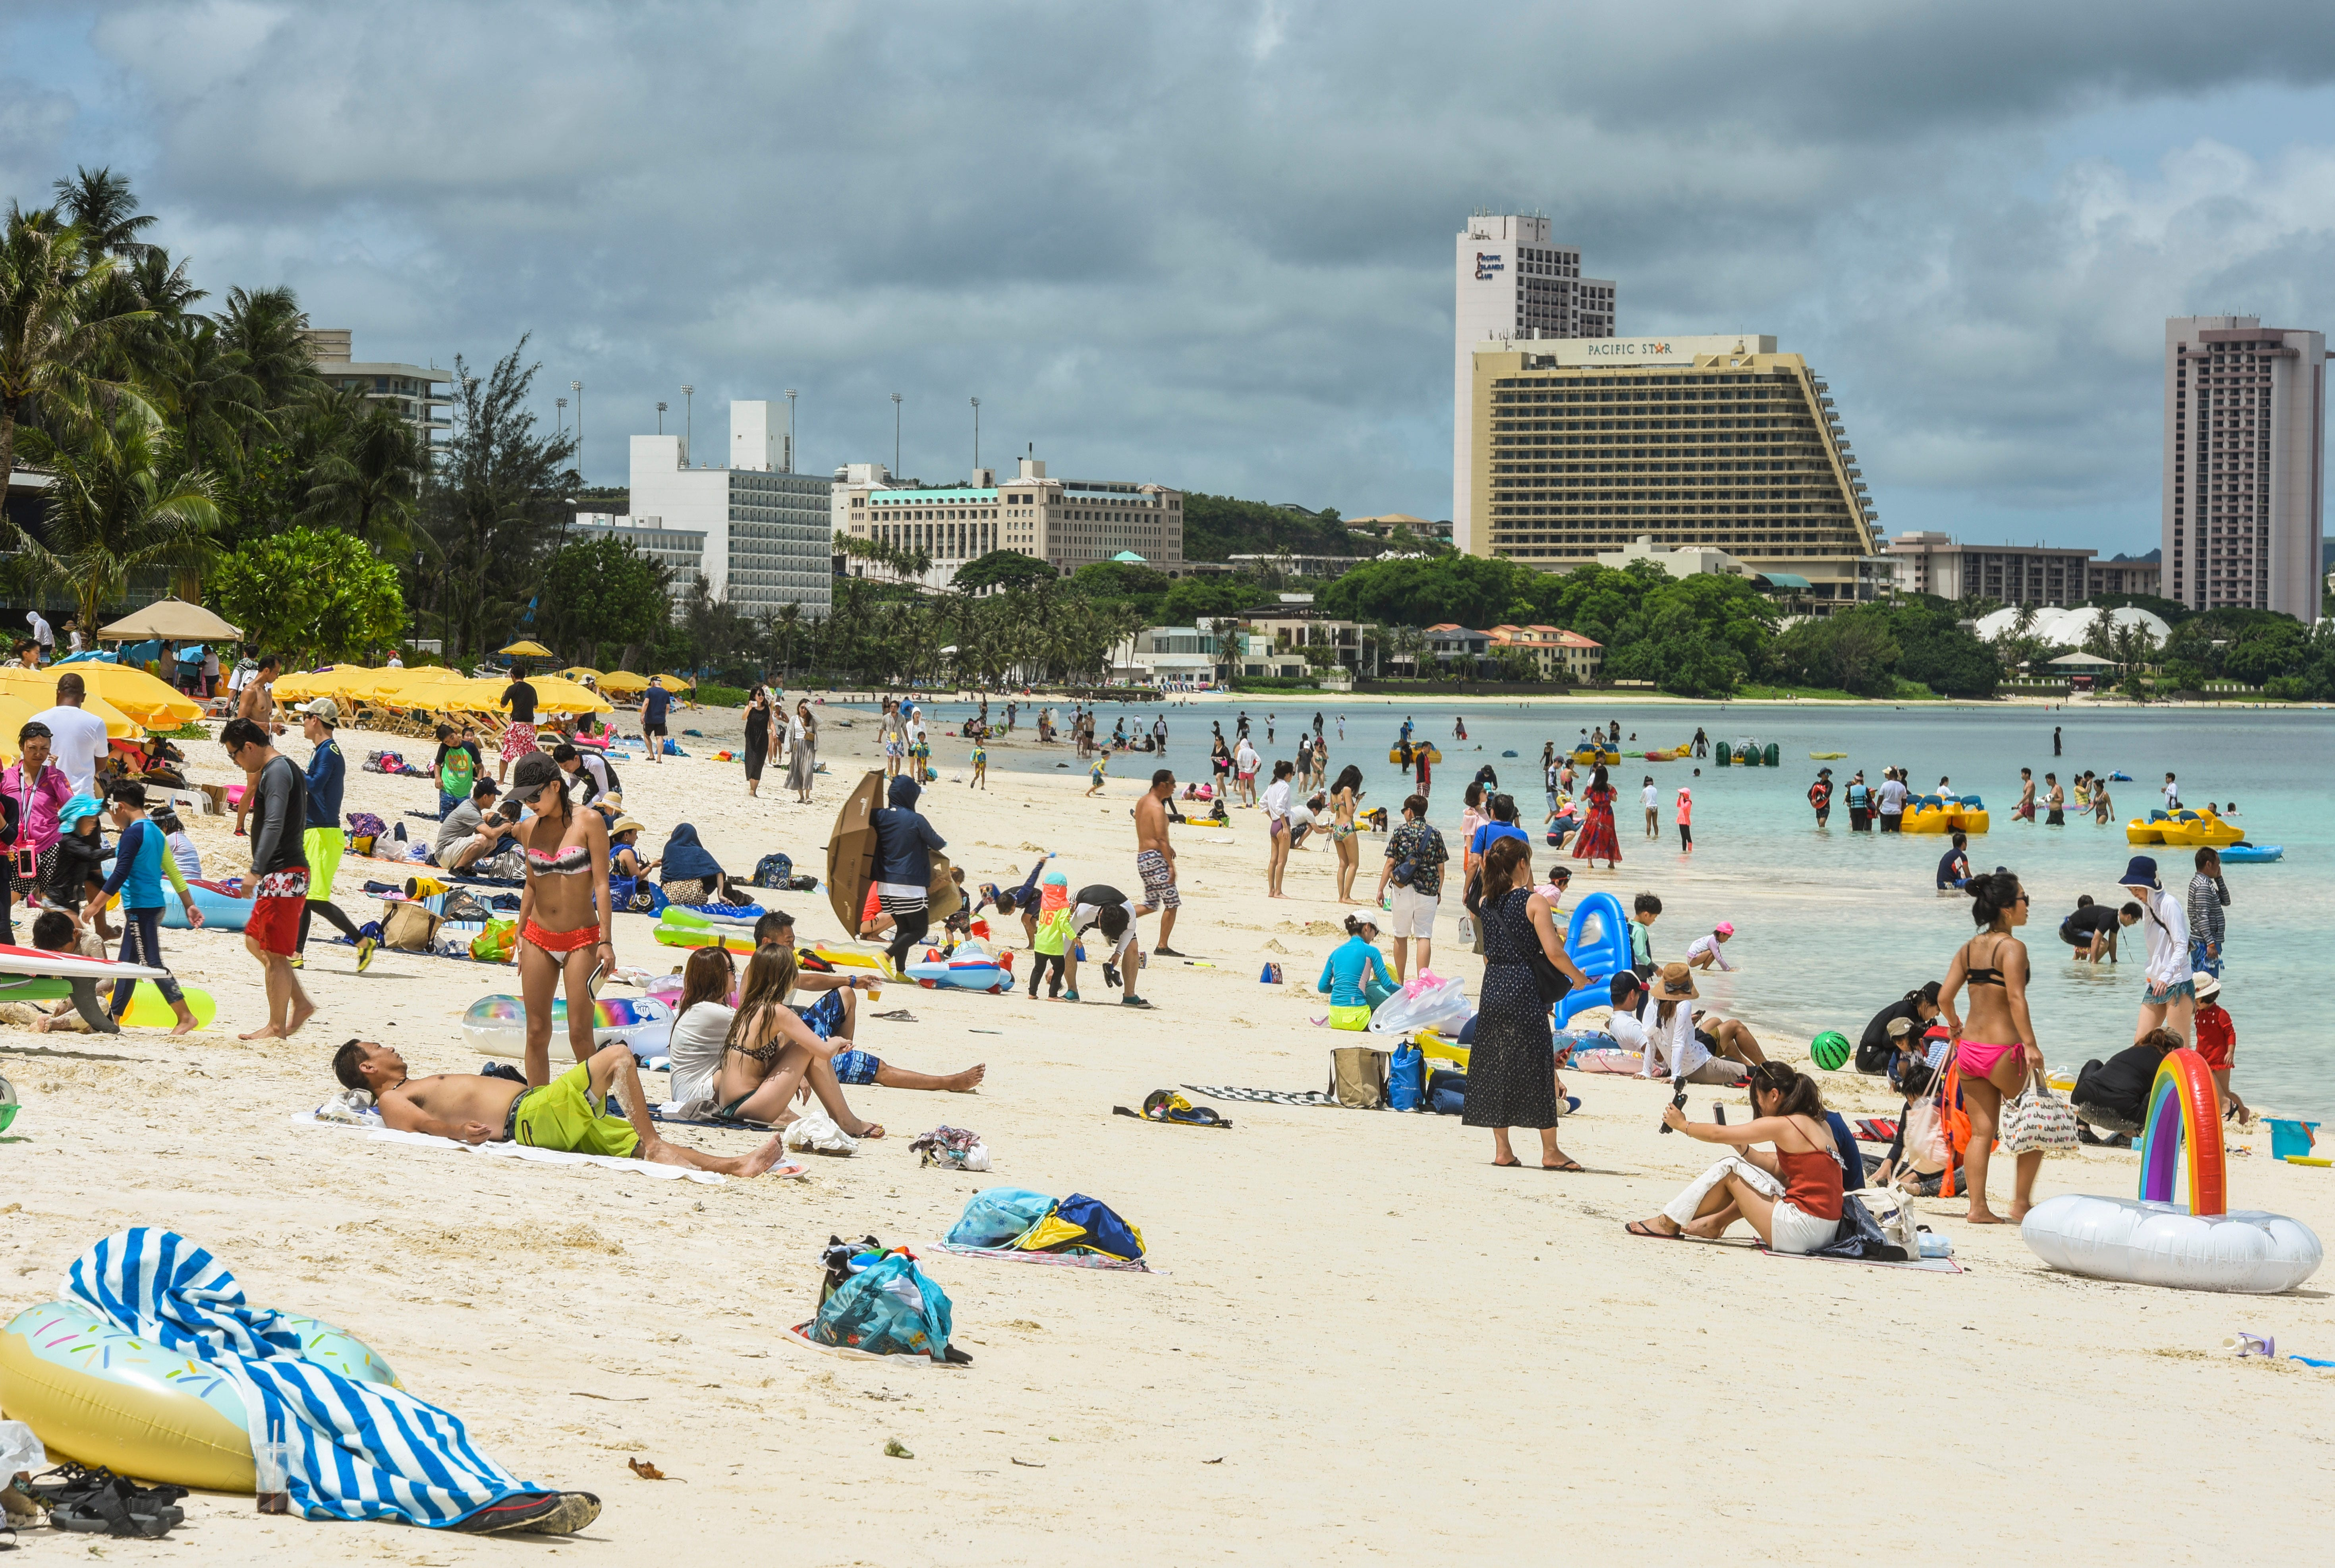 In this Aug. 22, 2018, tourists and other beachgoers take to the sand and water of Tumon Bay. Rev and Tax has been unable tokeepup with the growth of so-called Airbnb accommodations and other short-term rentals.